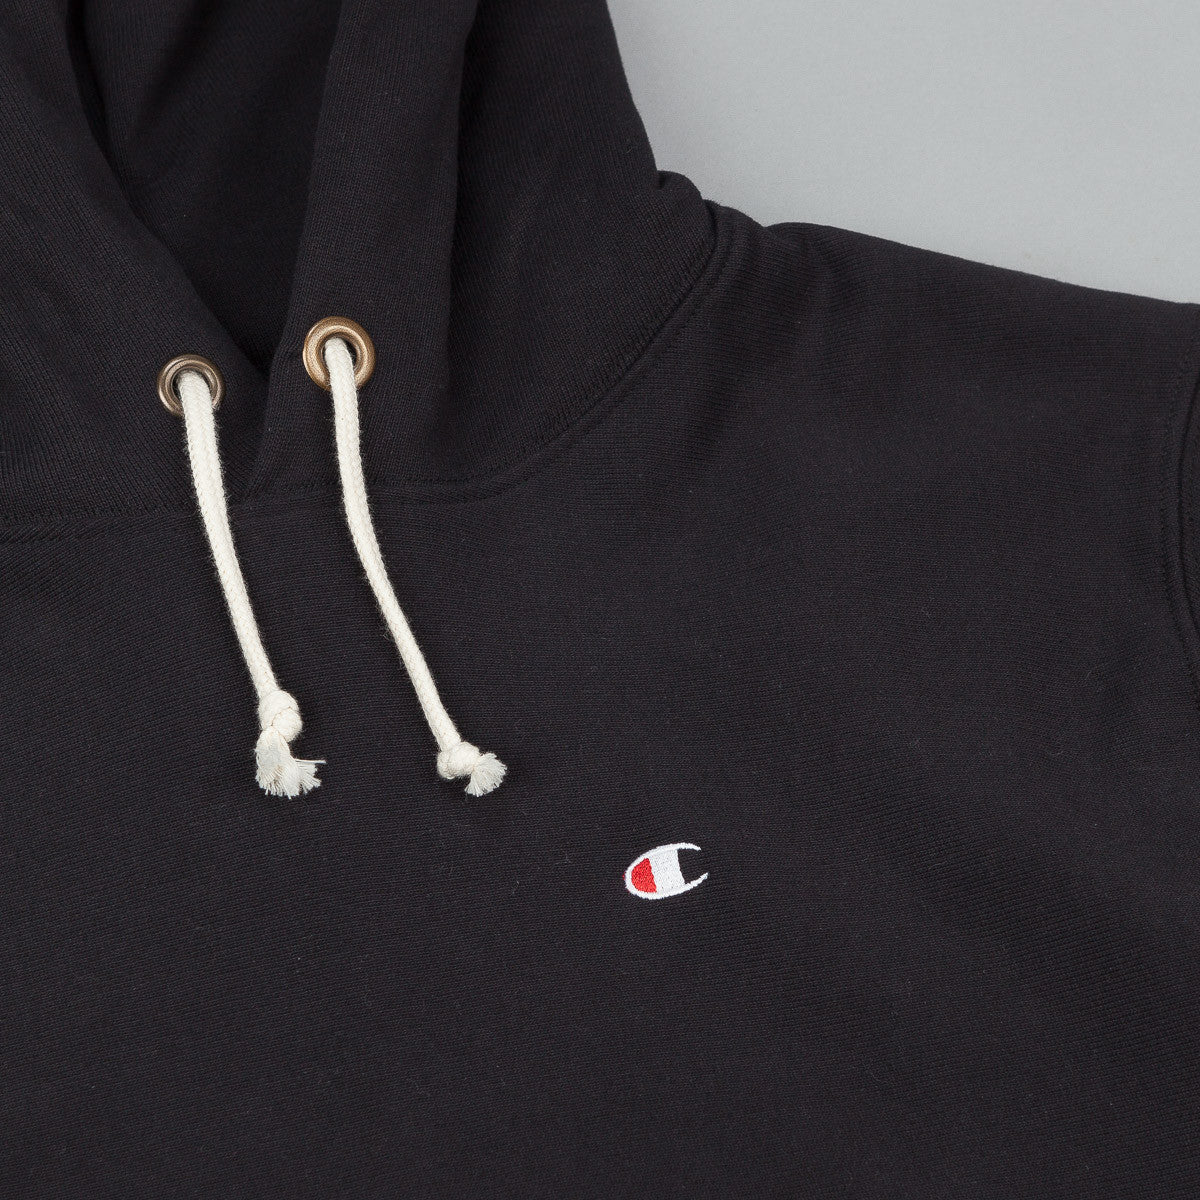 Champion Small C Reverse Weave Hooded Sweatshirt - Black